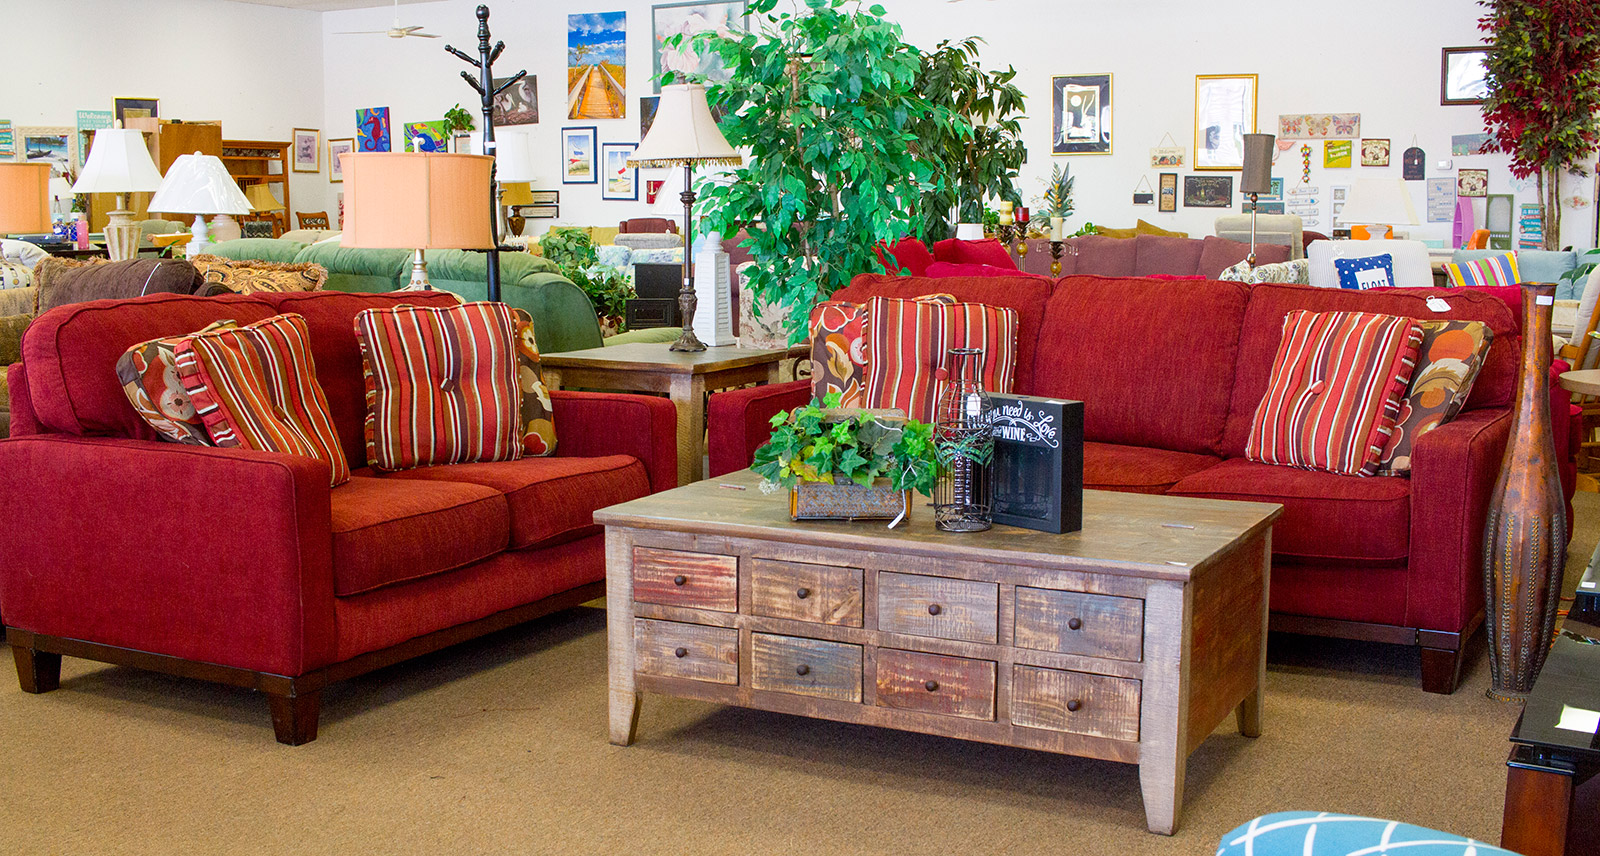 Contact   Southern Home Furniture   New and Used Furniture in Daytona Beach. Contact   Southern Home Furniture   New and Used Furniture in